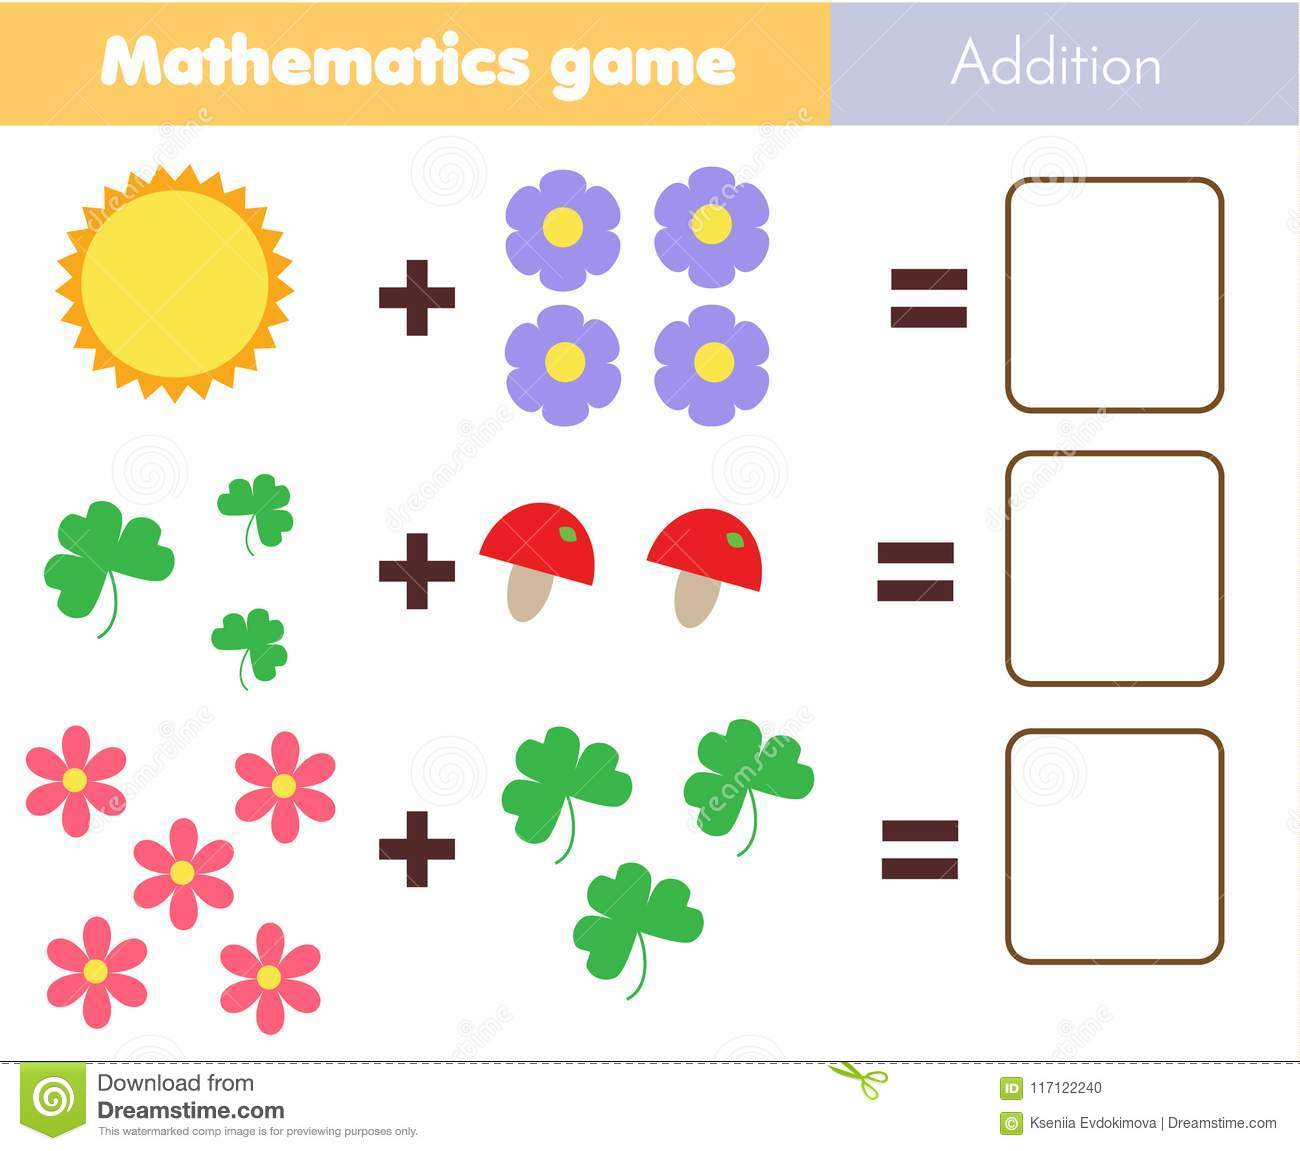 Mathematics Worksheet Educational Game For Children Learning Counting Addition For Kids And